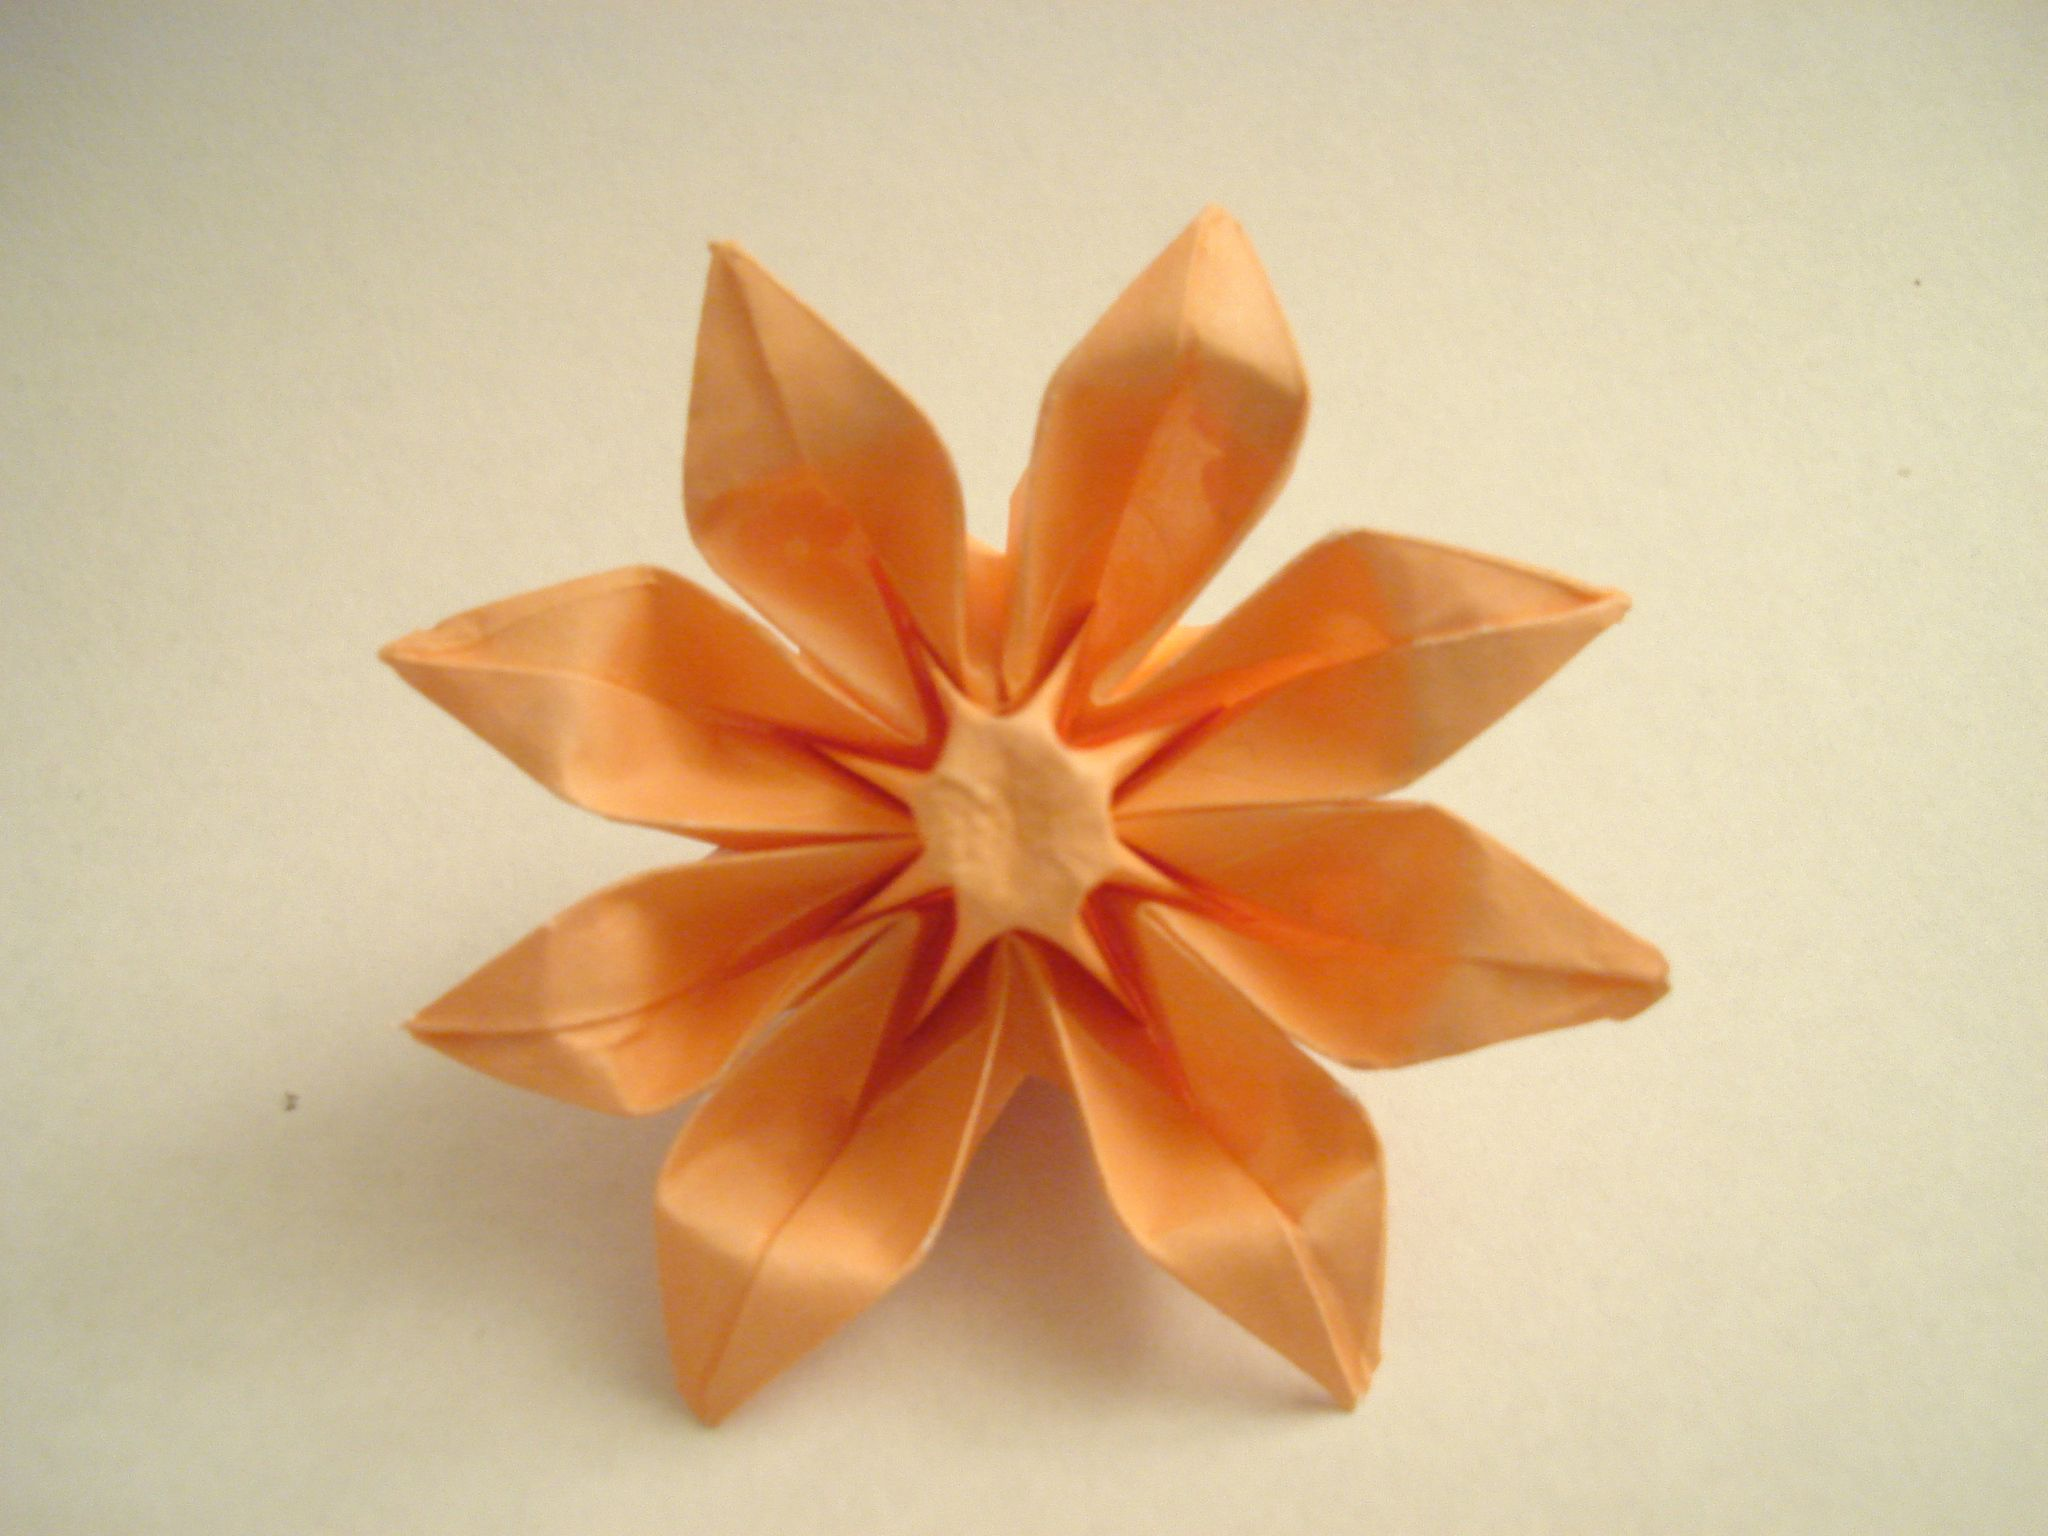 36 best origami images on pinterest origami paper paper and diy 36 best origami images on pinterest origami paper paper and diy origami jeuxipadfo Image collections